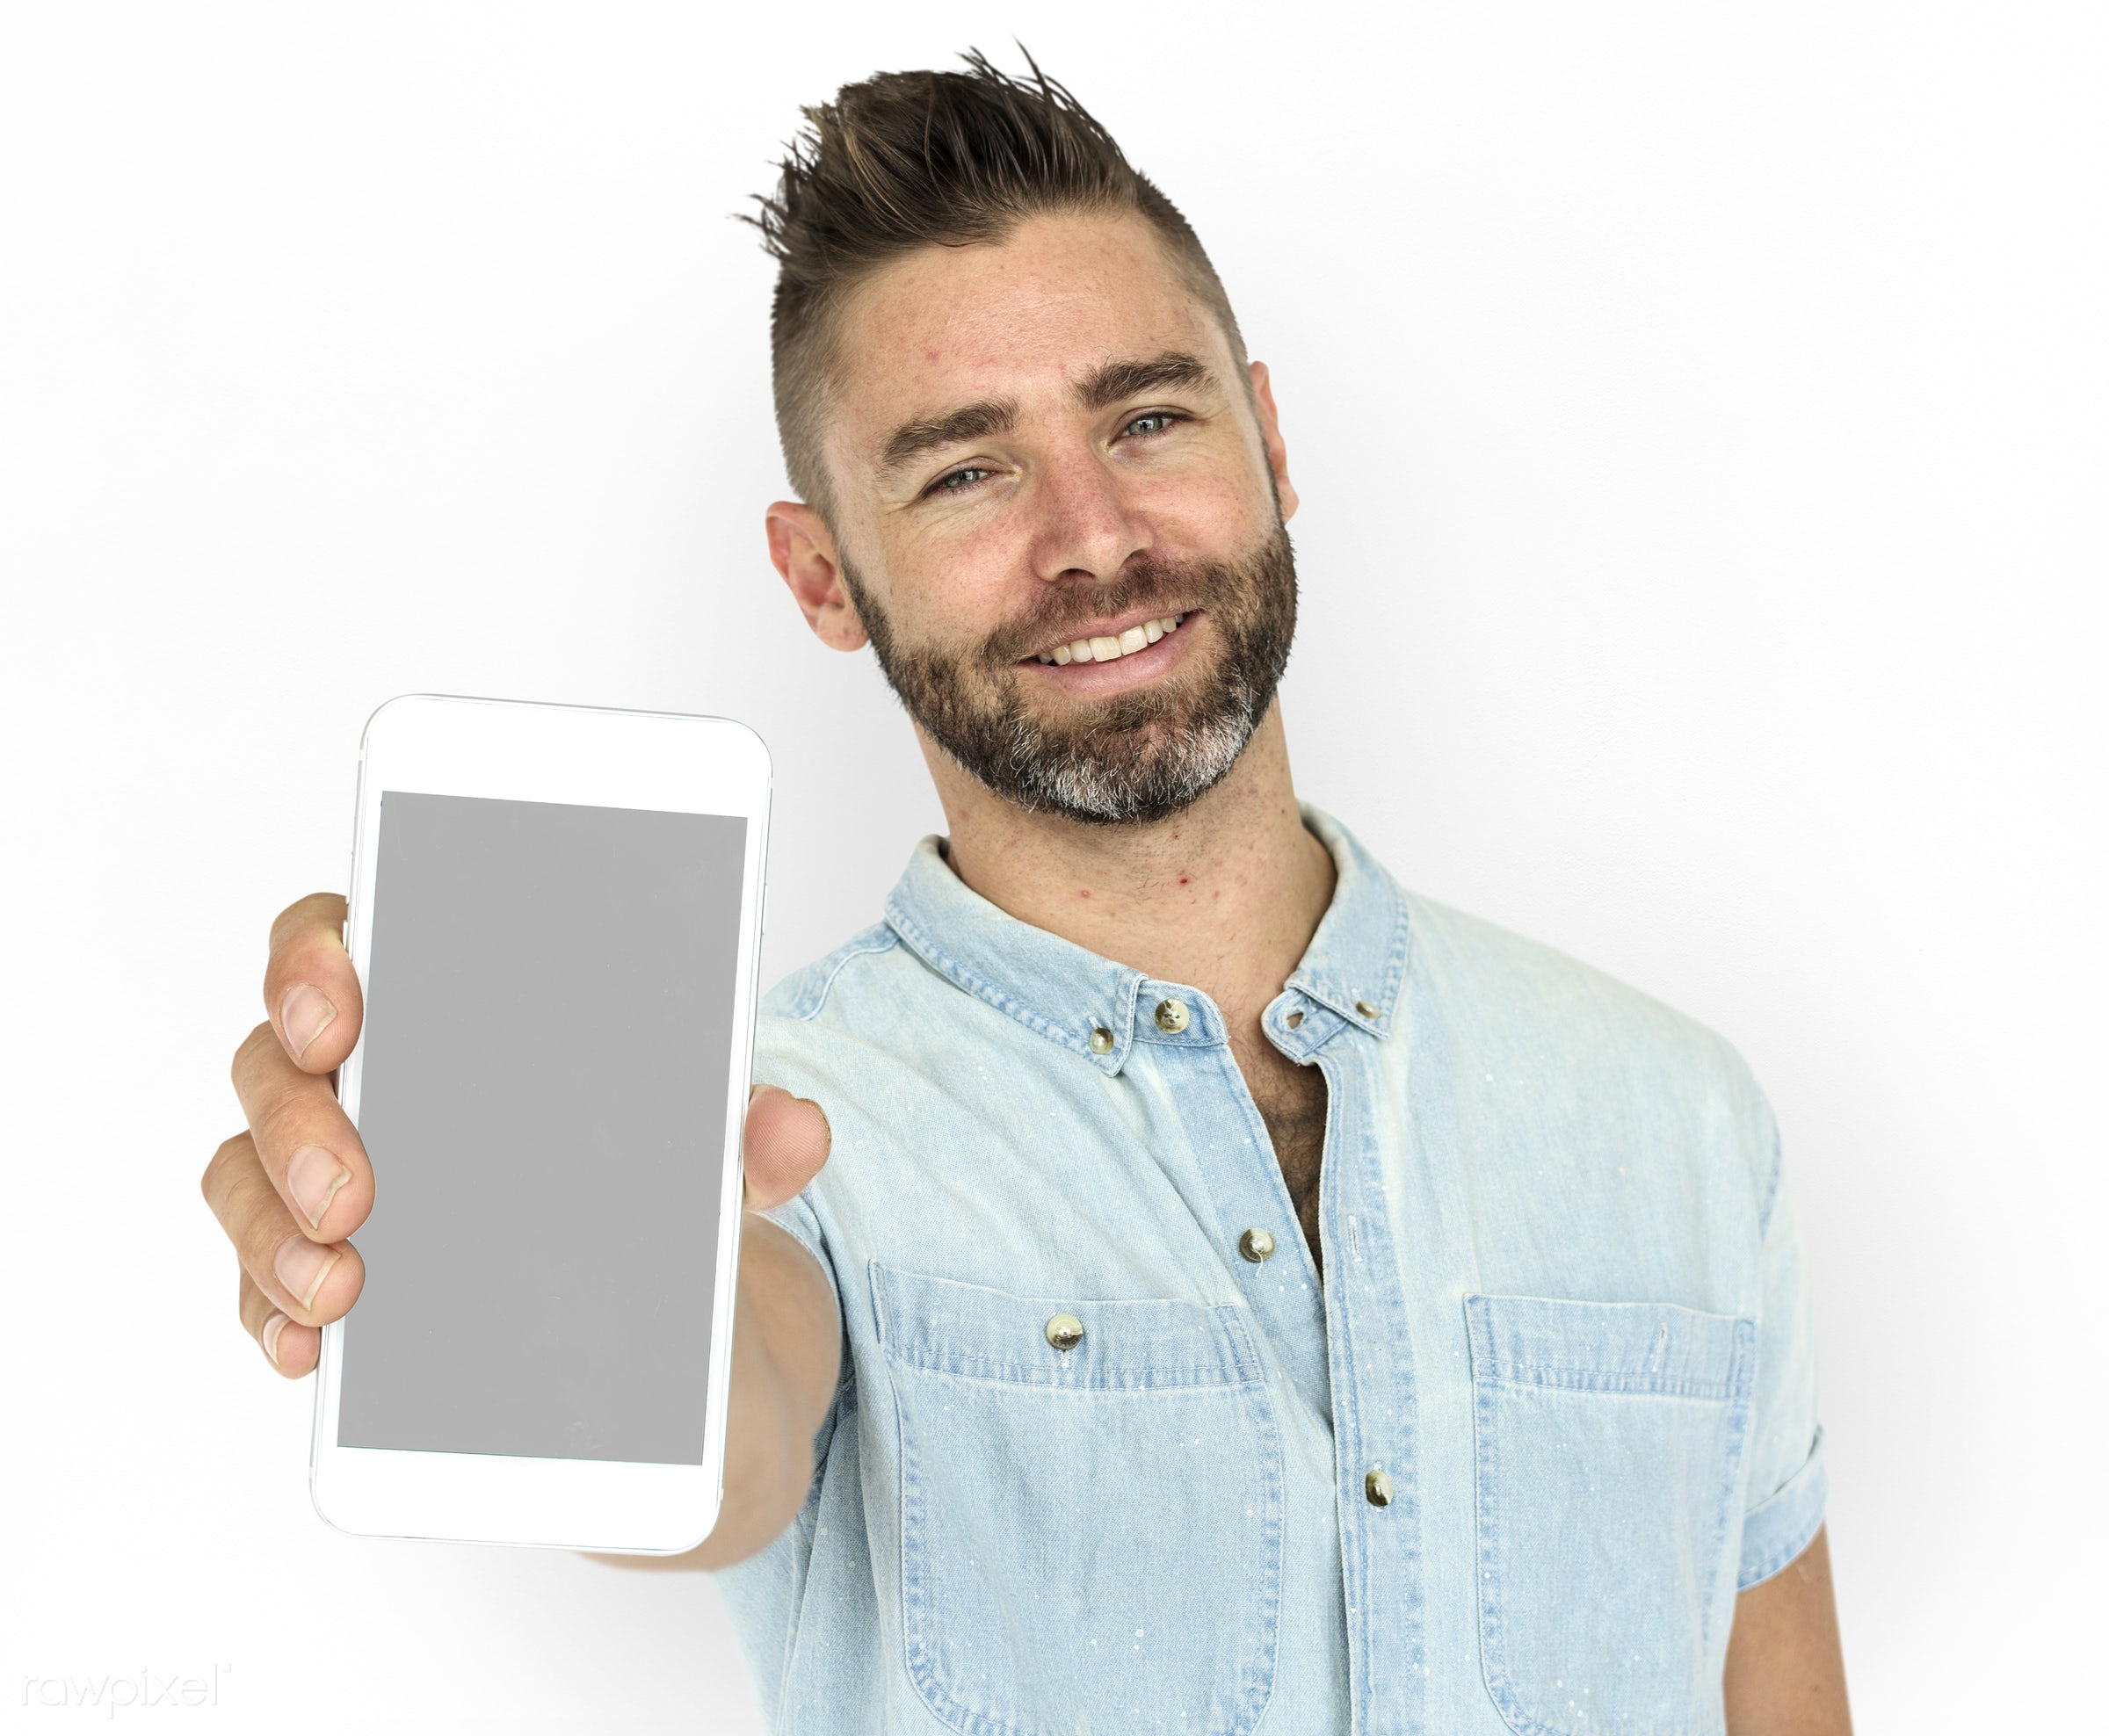 background, beard, caucasian, communication, device, emotion, expression, holding, holding phone, isolated, isolated on...